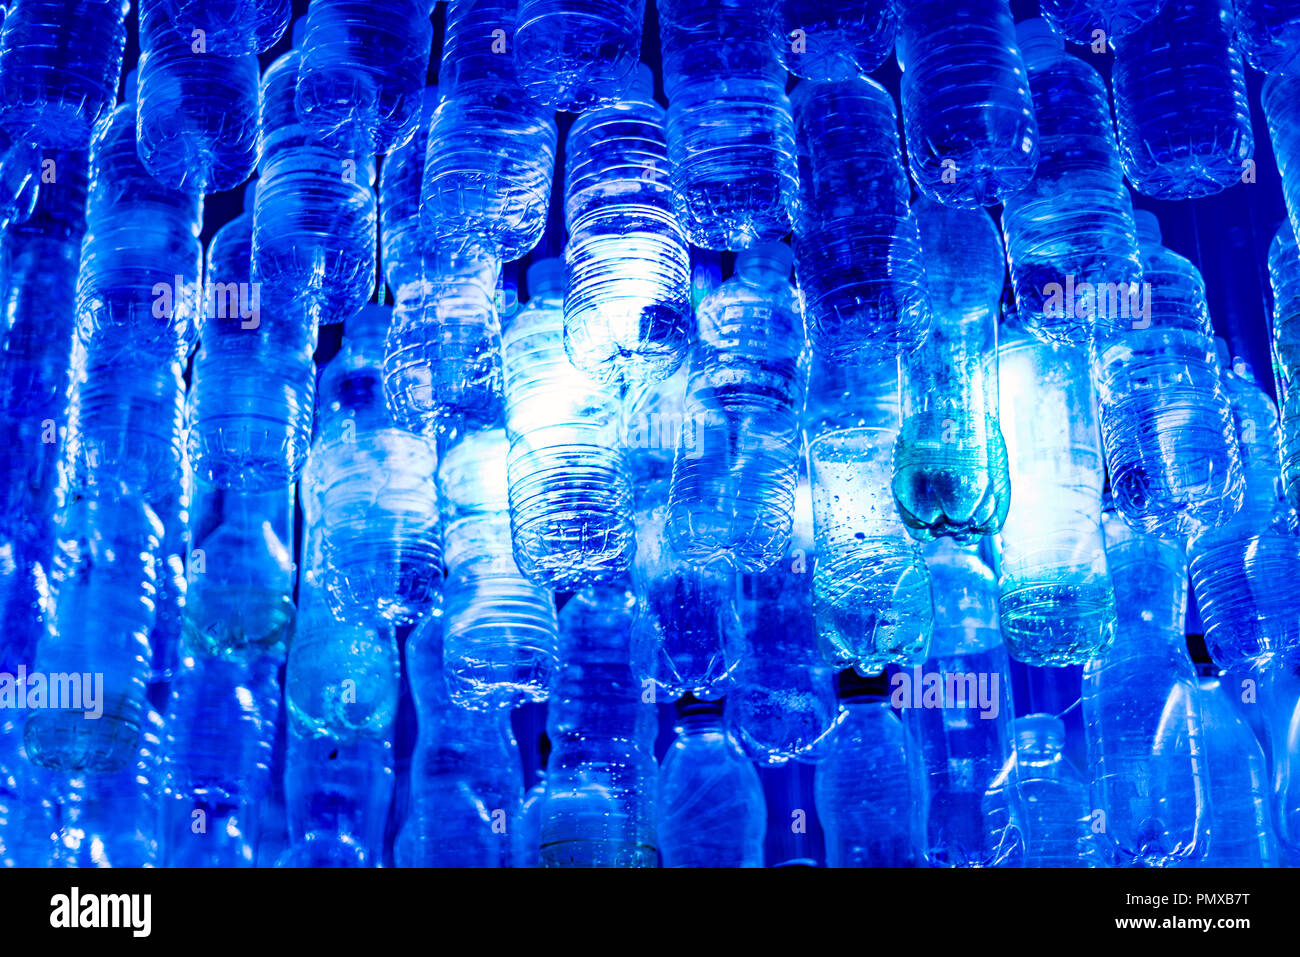 Installation made from bottles recovered from ocean at the Southampton Boat Show 2018 illustrating the amount of plastics in the oceans. - Stock Image